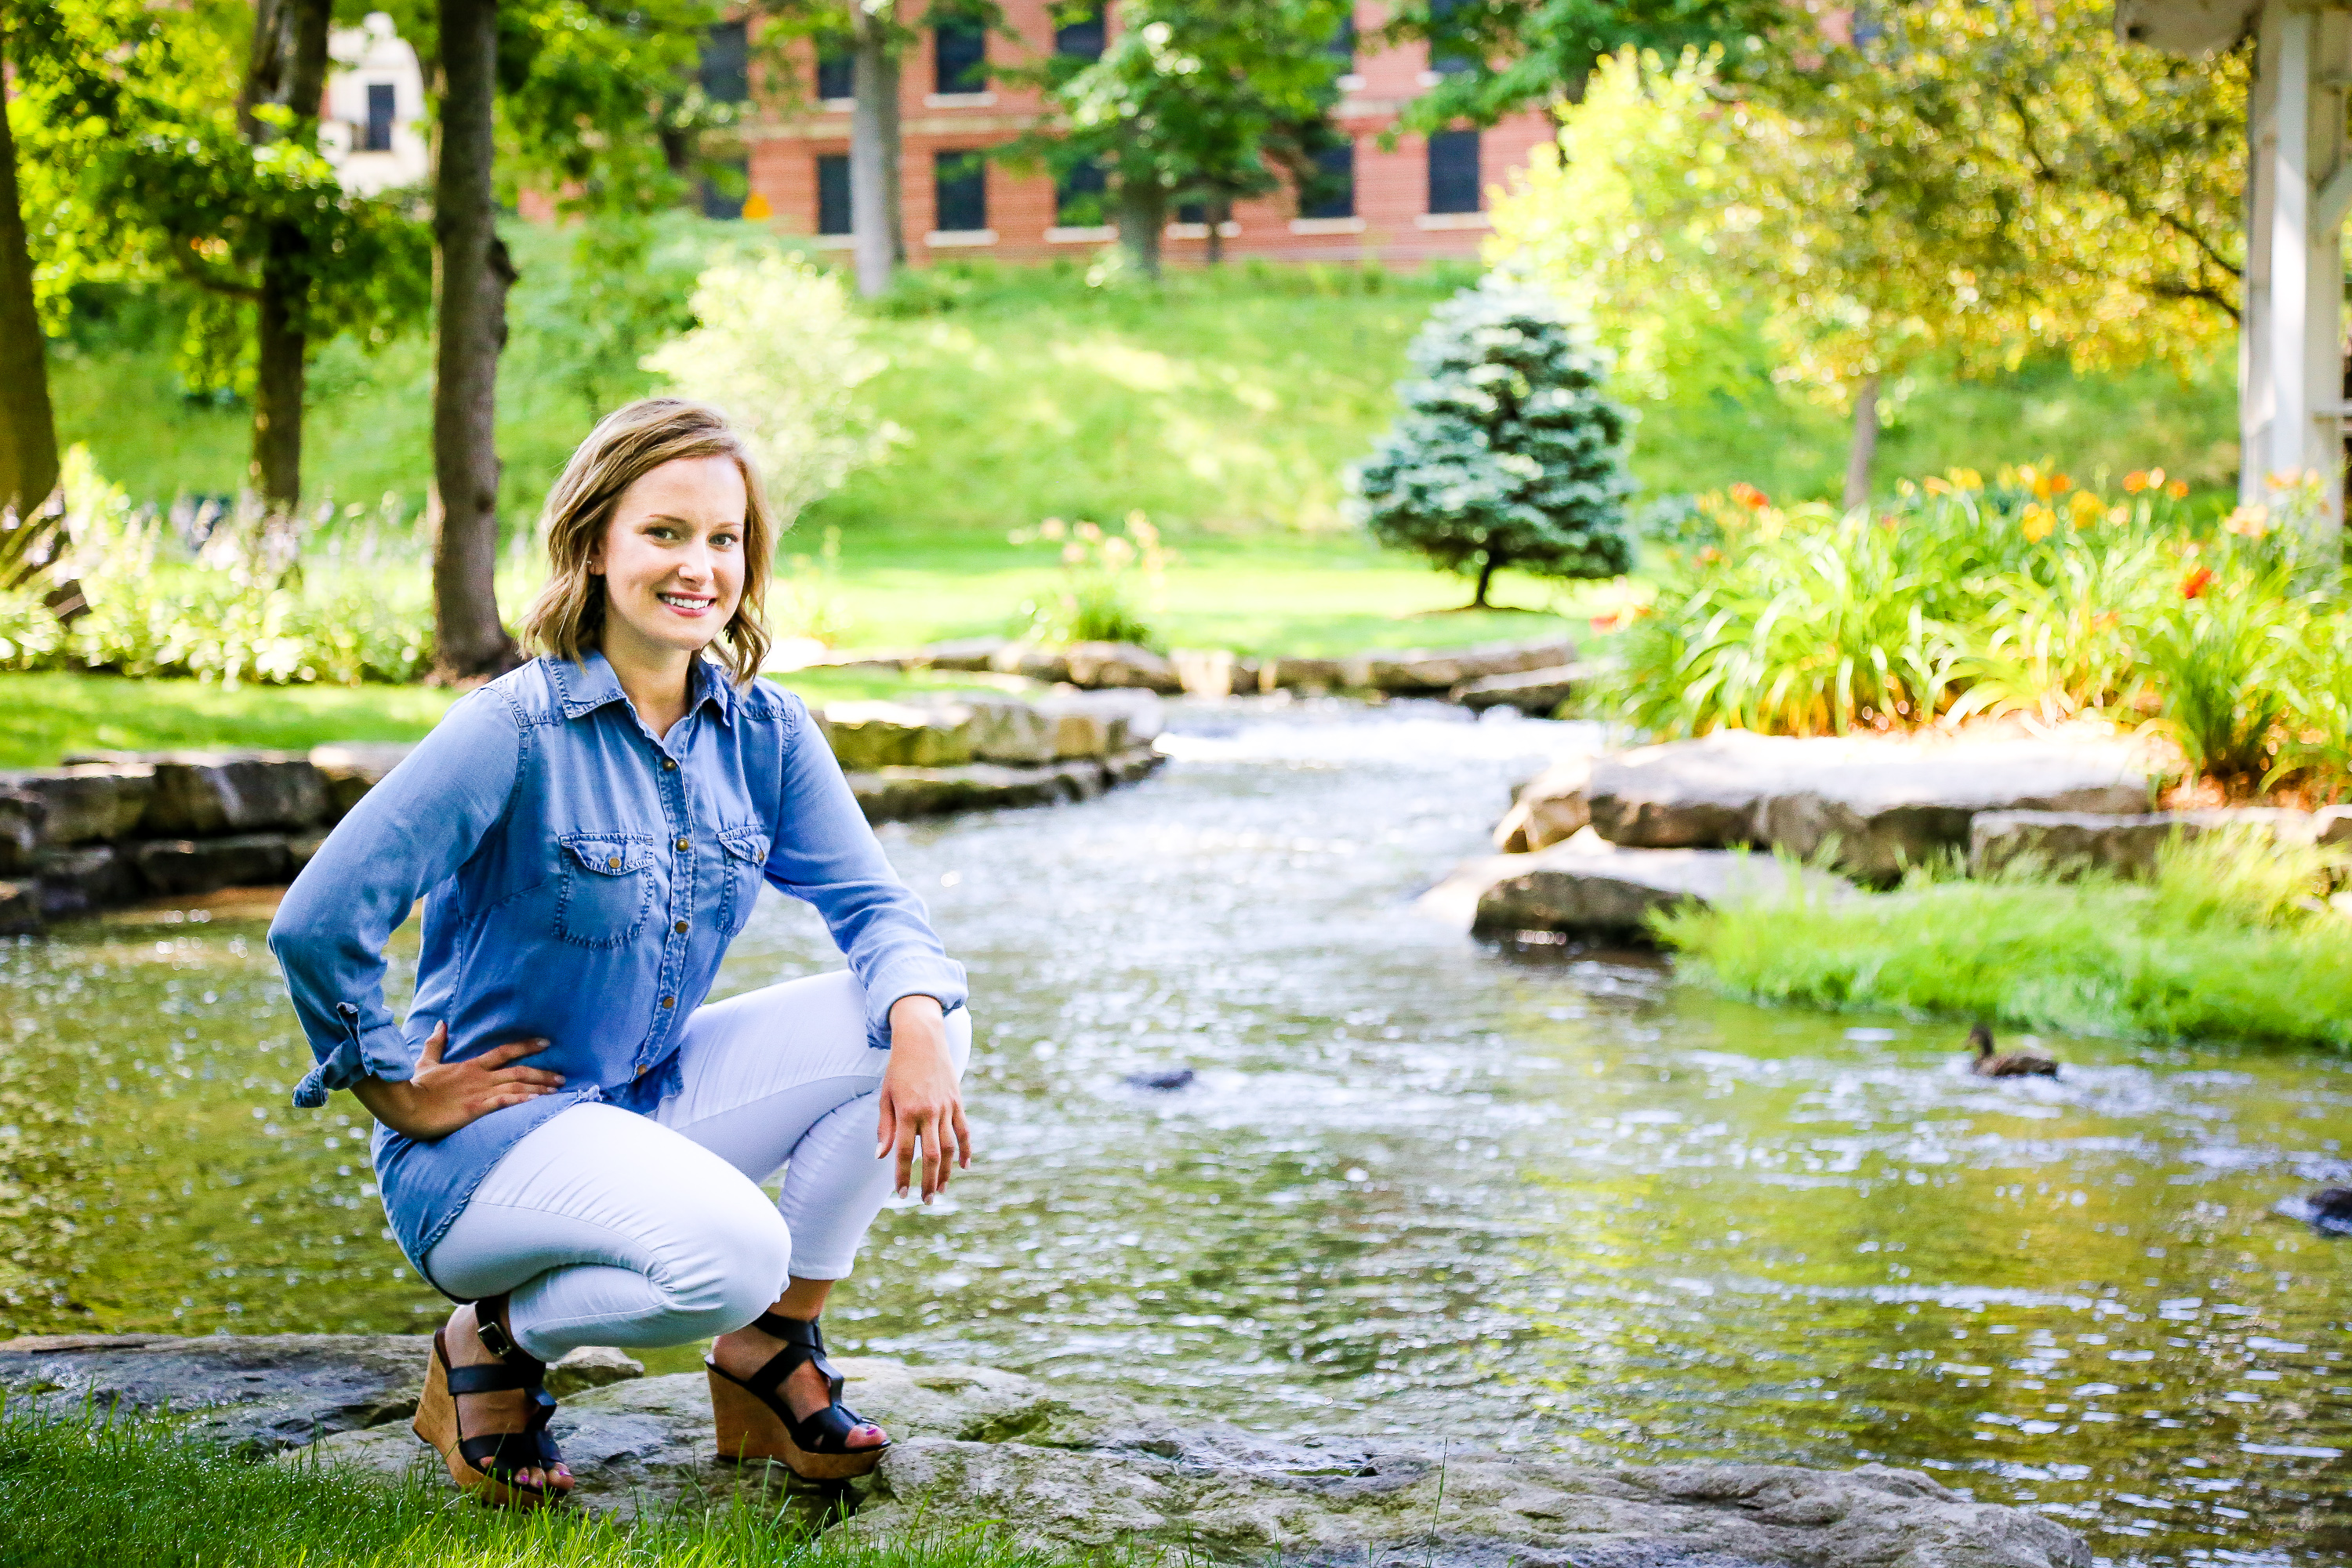 Shelby Gulpker's senior photography session at the Grand Rapids Home for Veterans, located in Grand Rapids, Michigan.